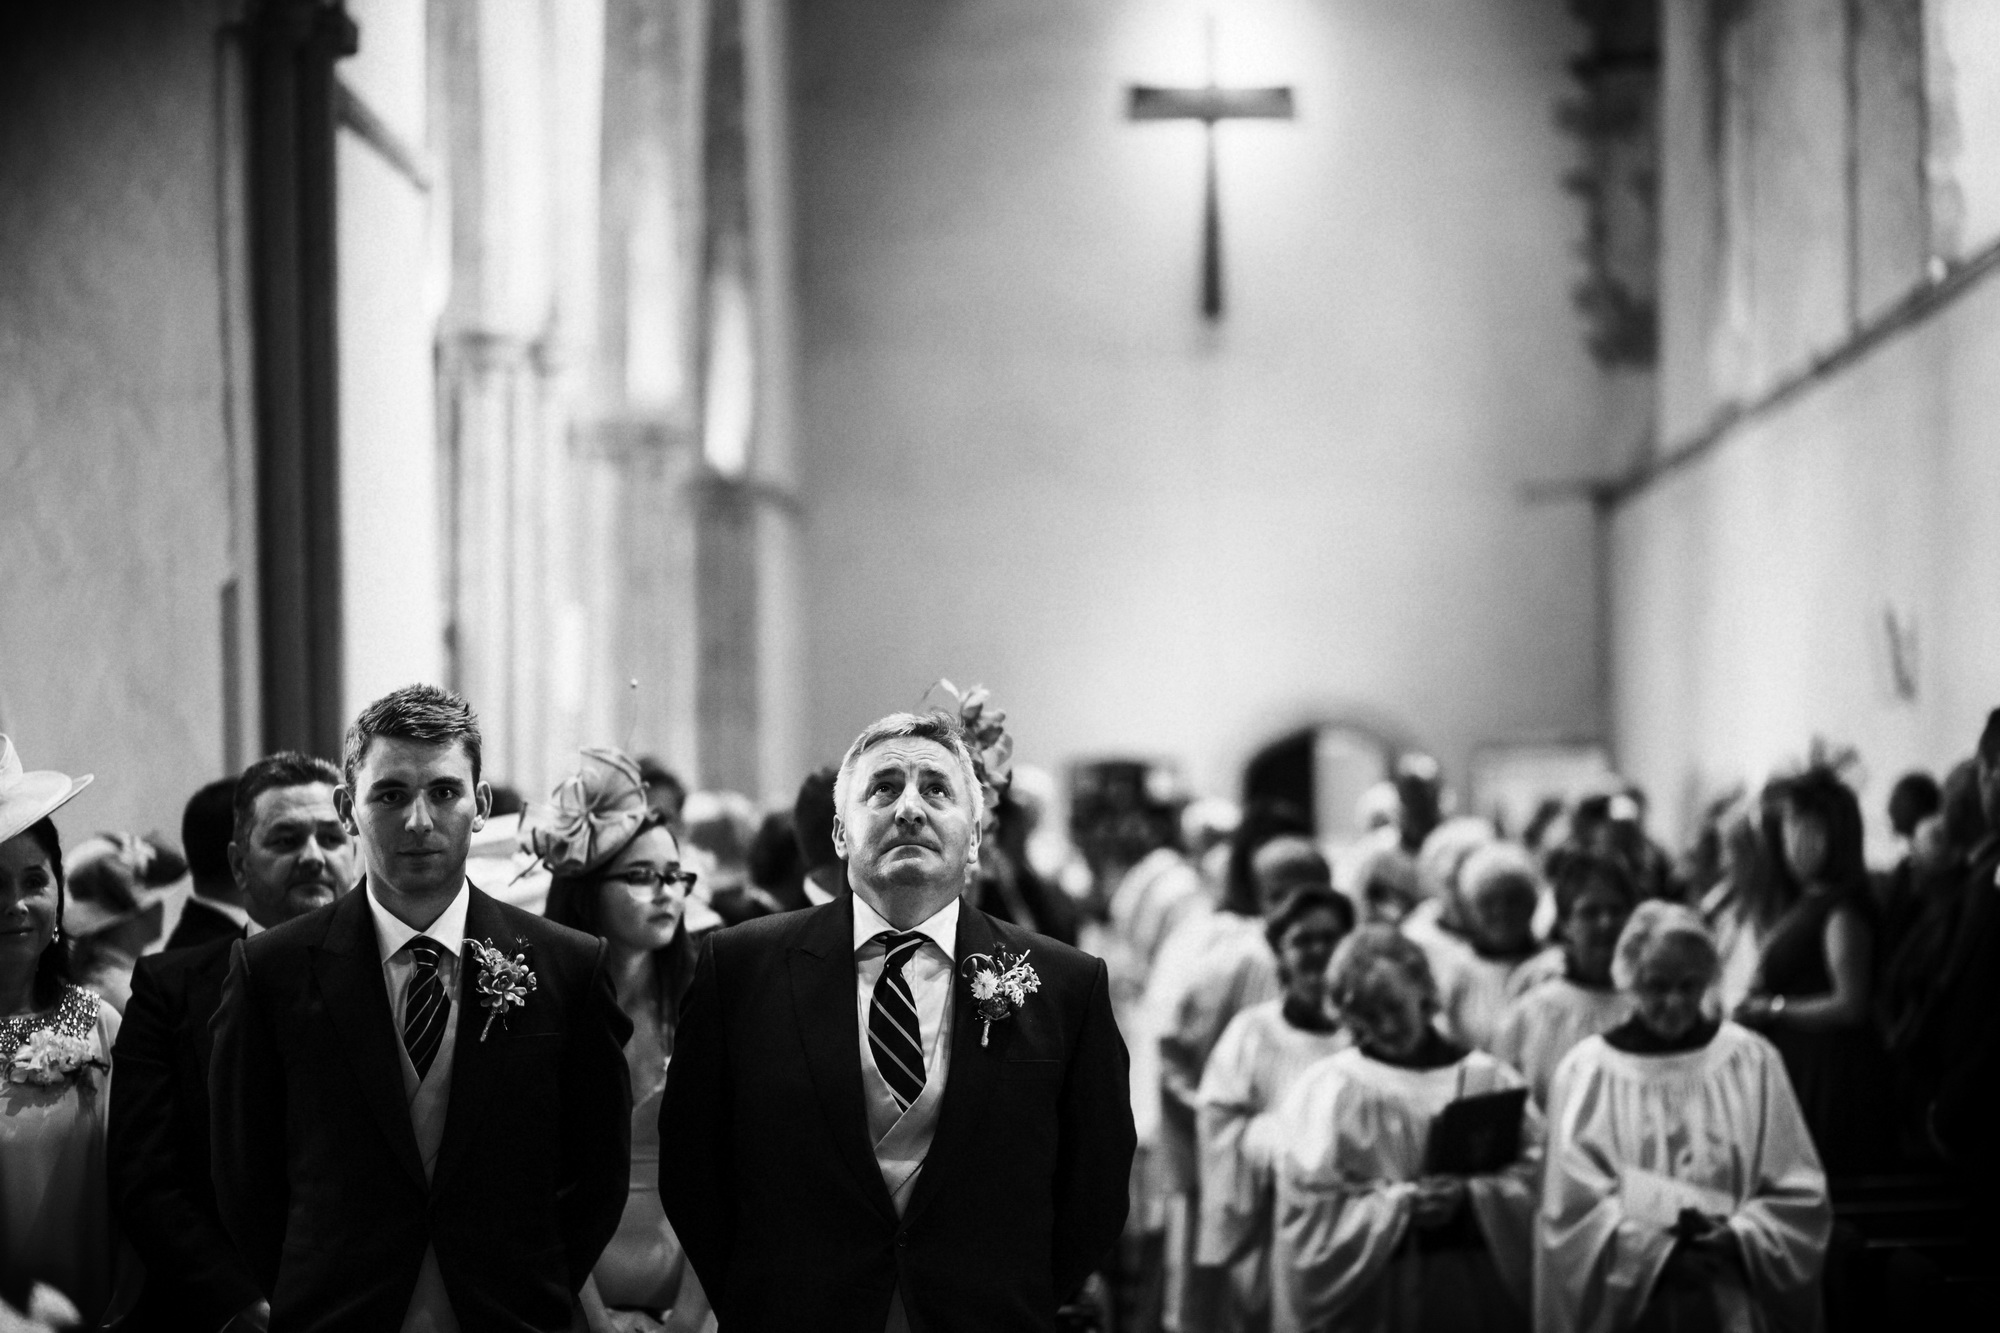 Documentary wedding photography capturing father and son